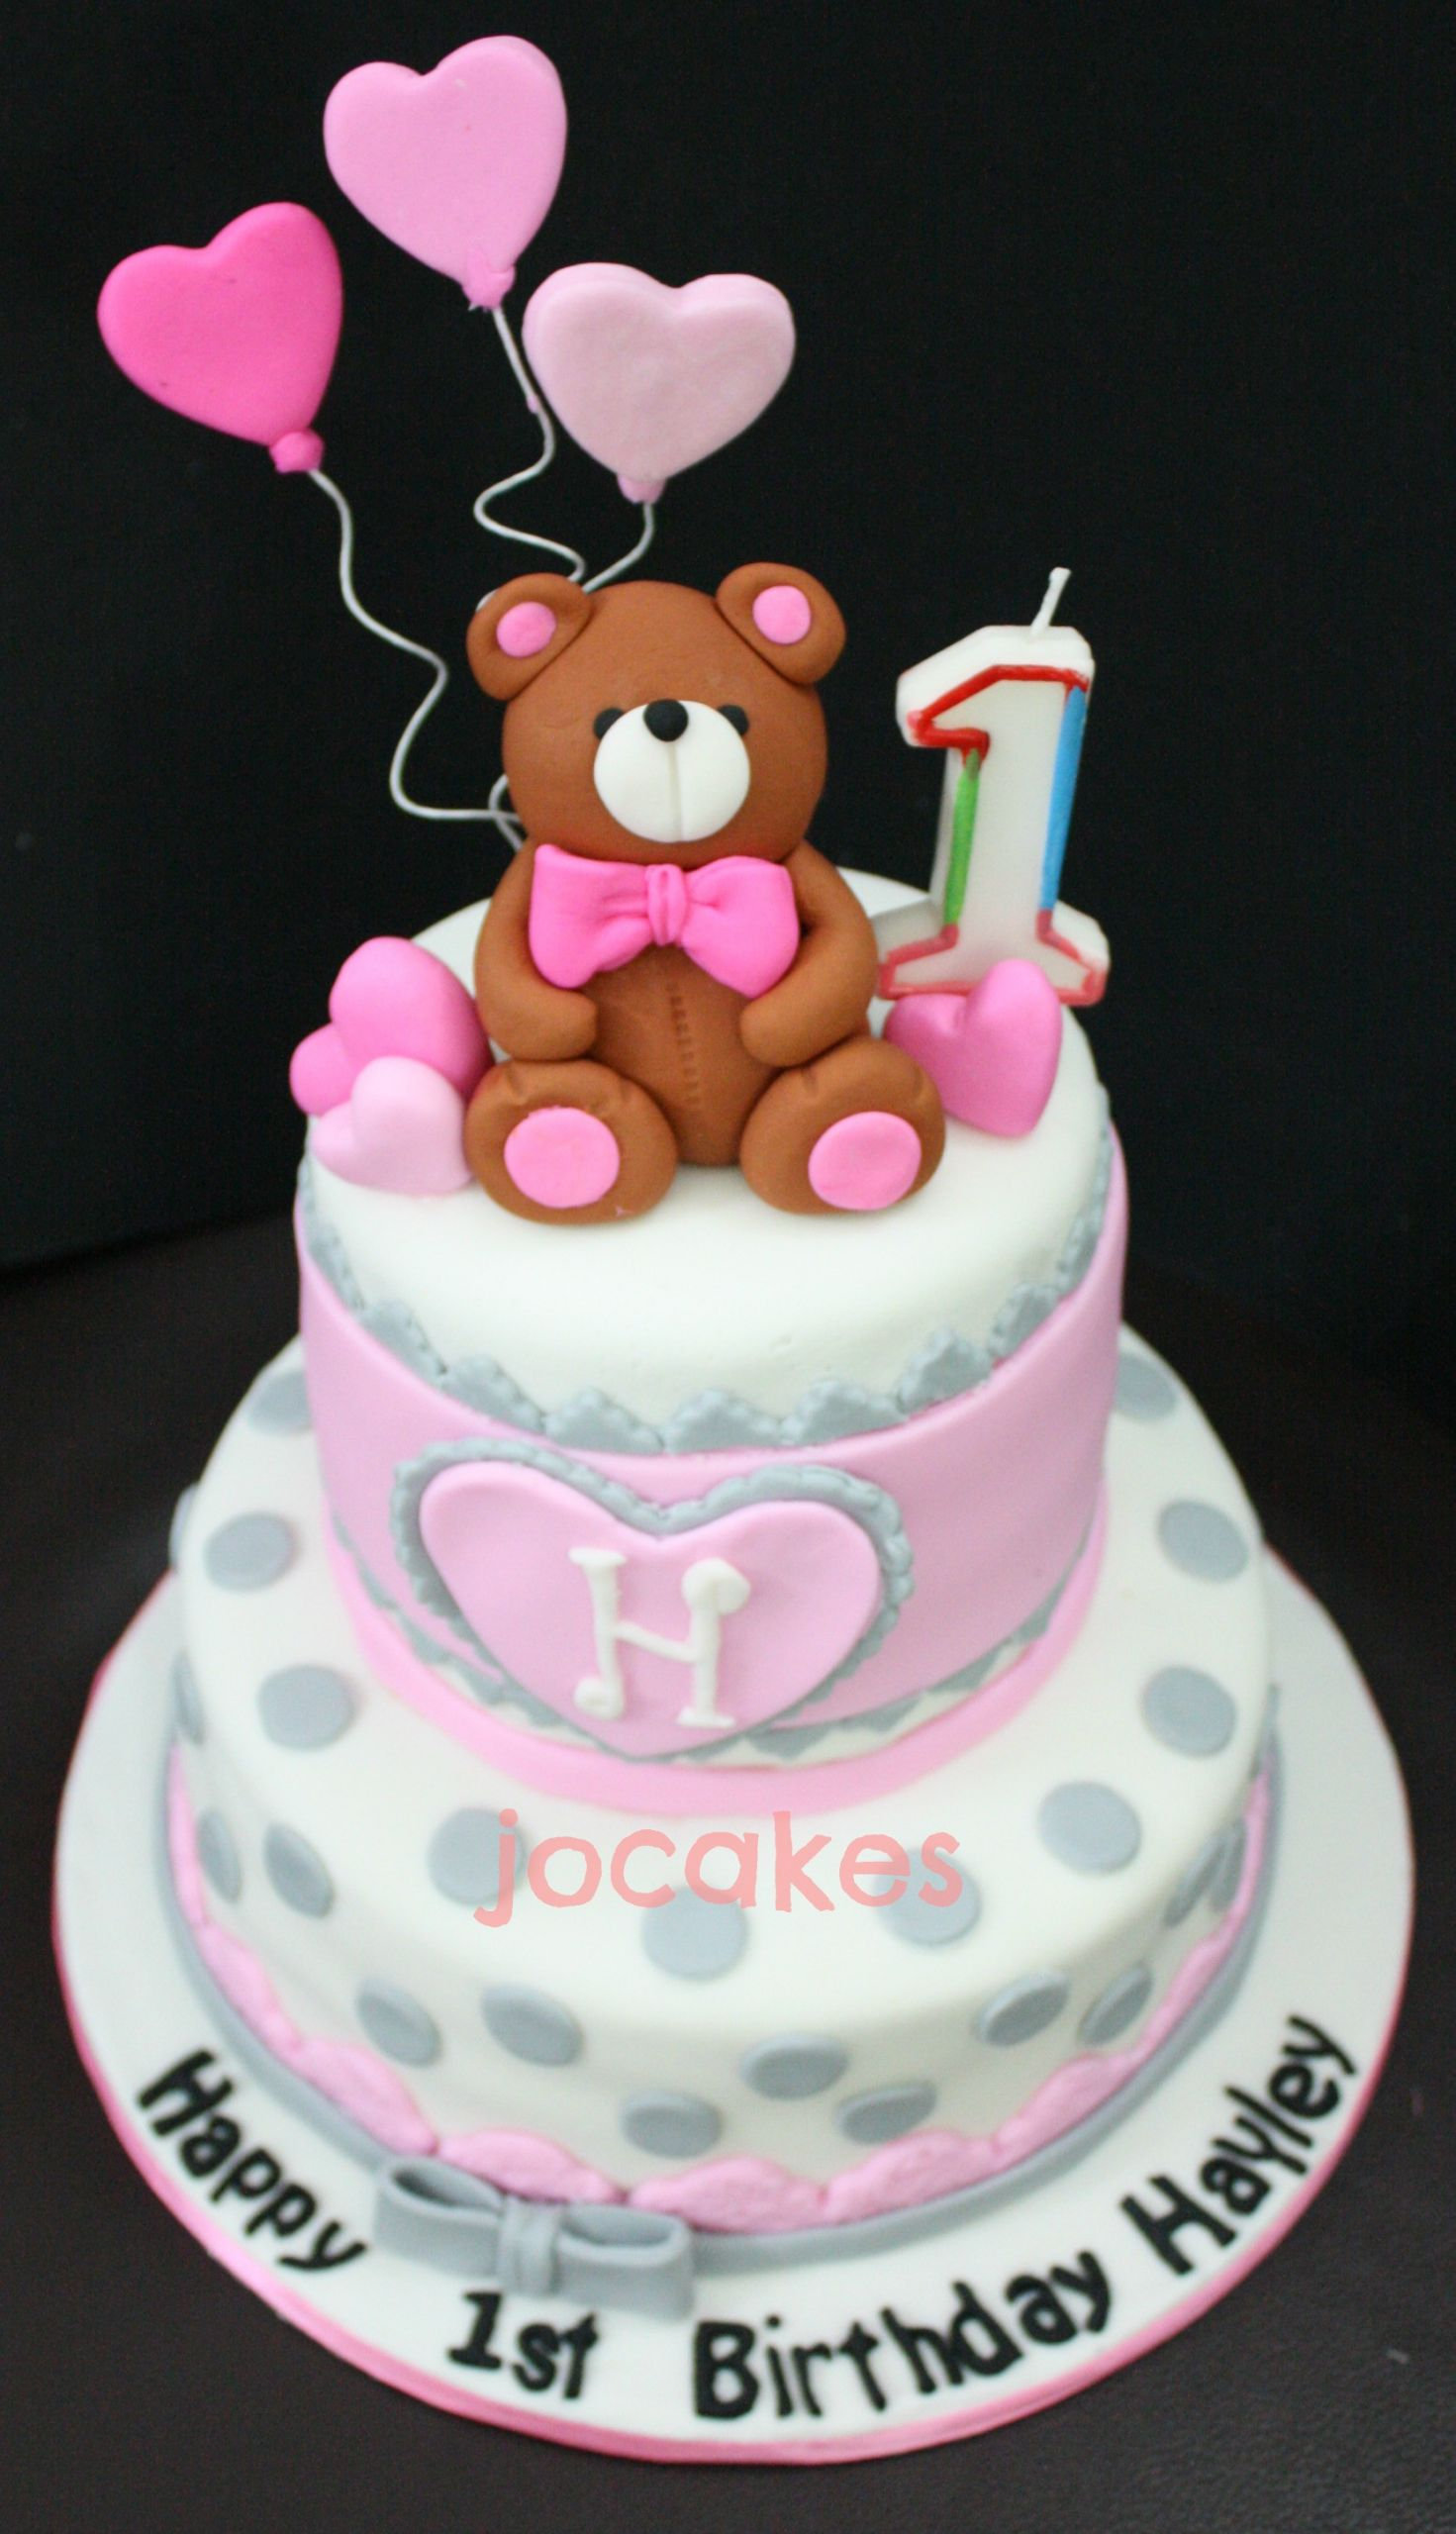 Birthday Cake For 1 Year Old  1 year old birthday cake